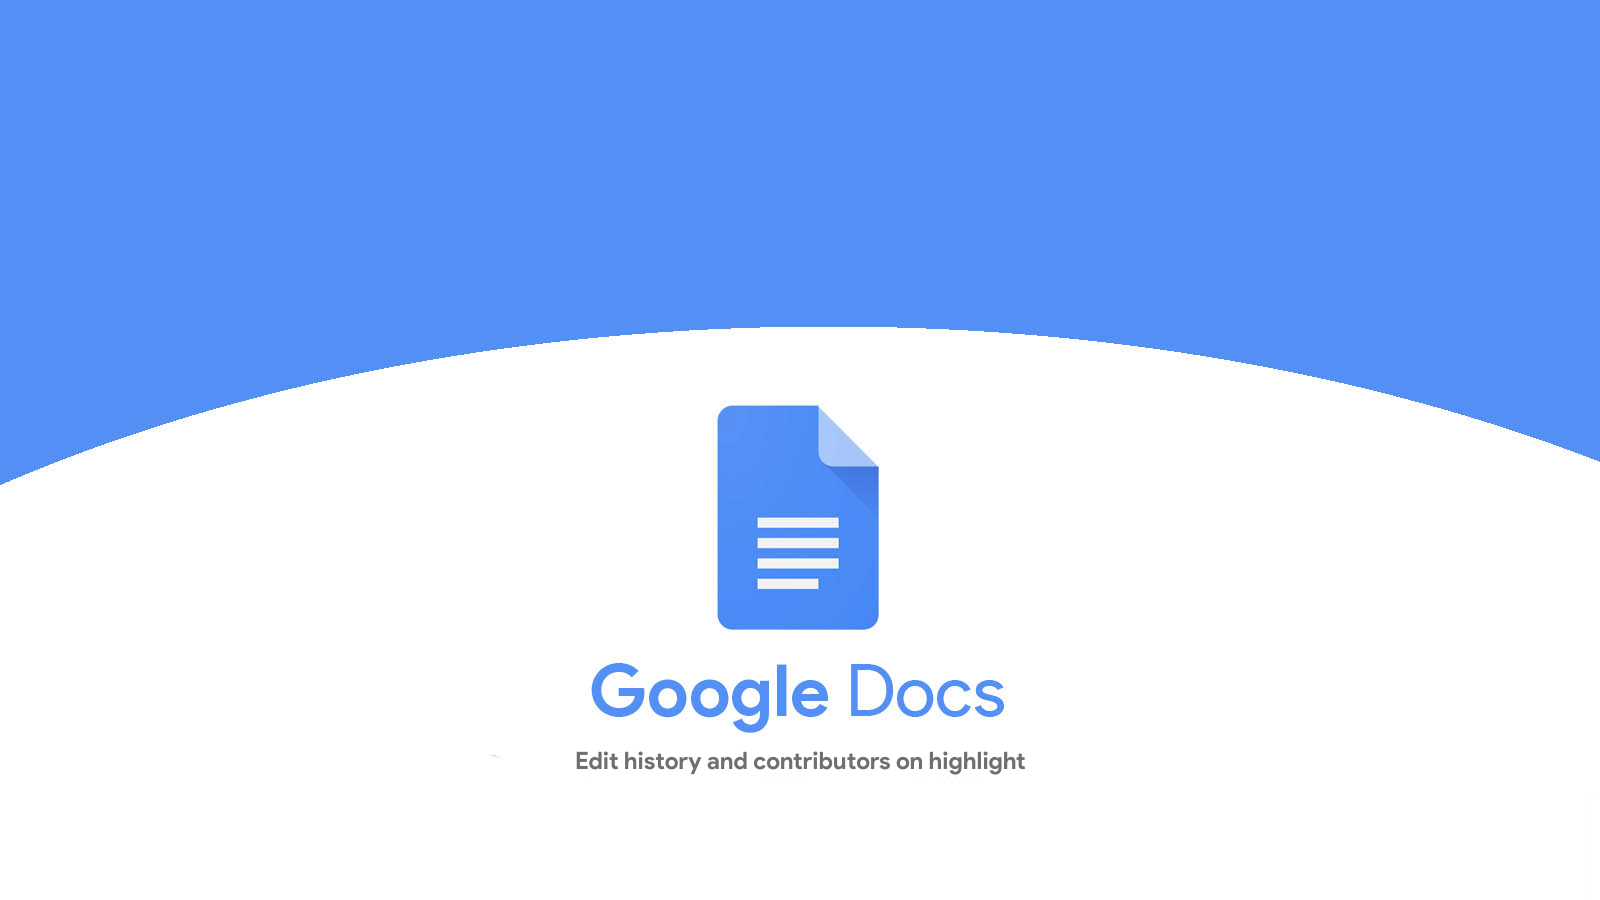 Google Docs will now show edit history and contributors when you highlight text